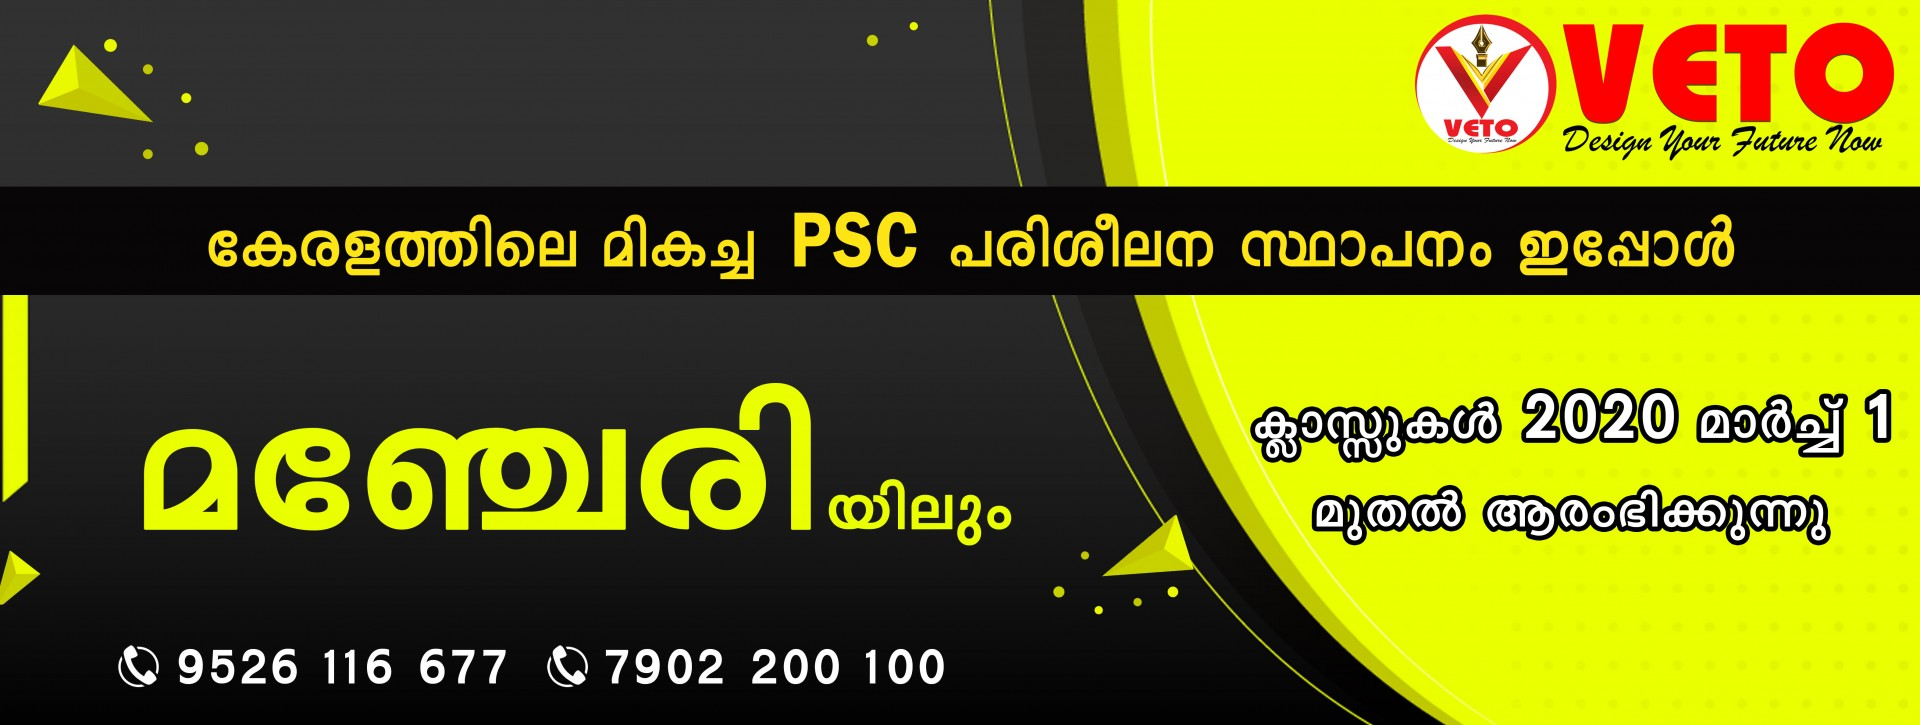 Veto best psc coaching center in kerala